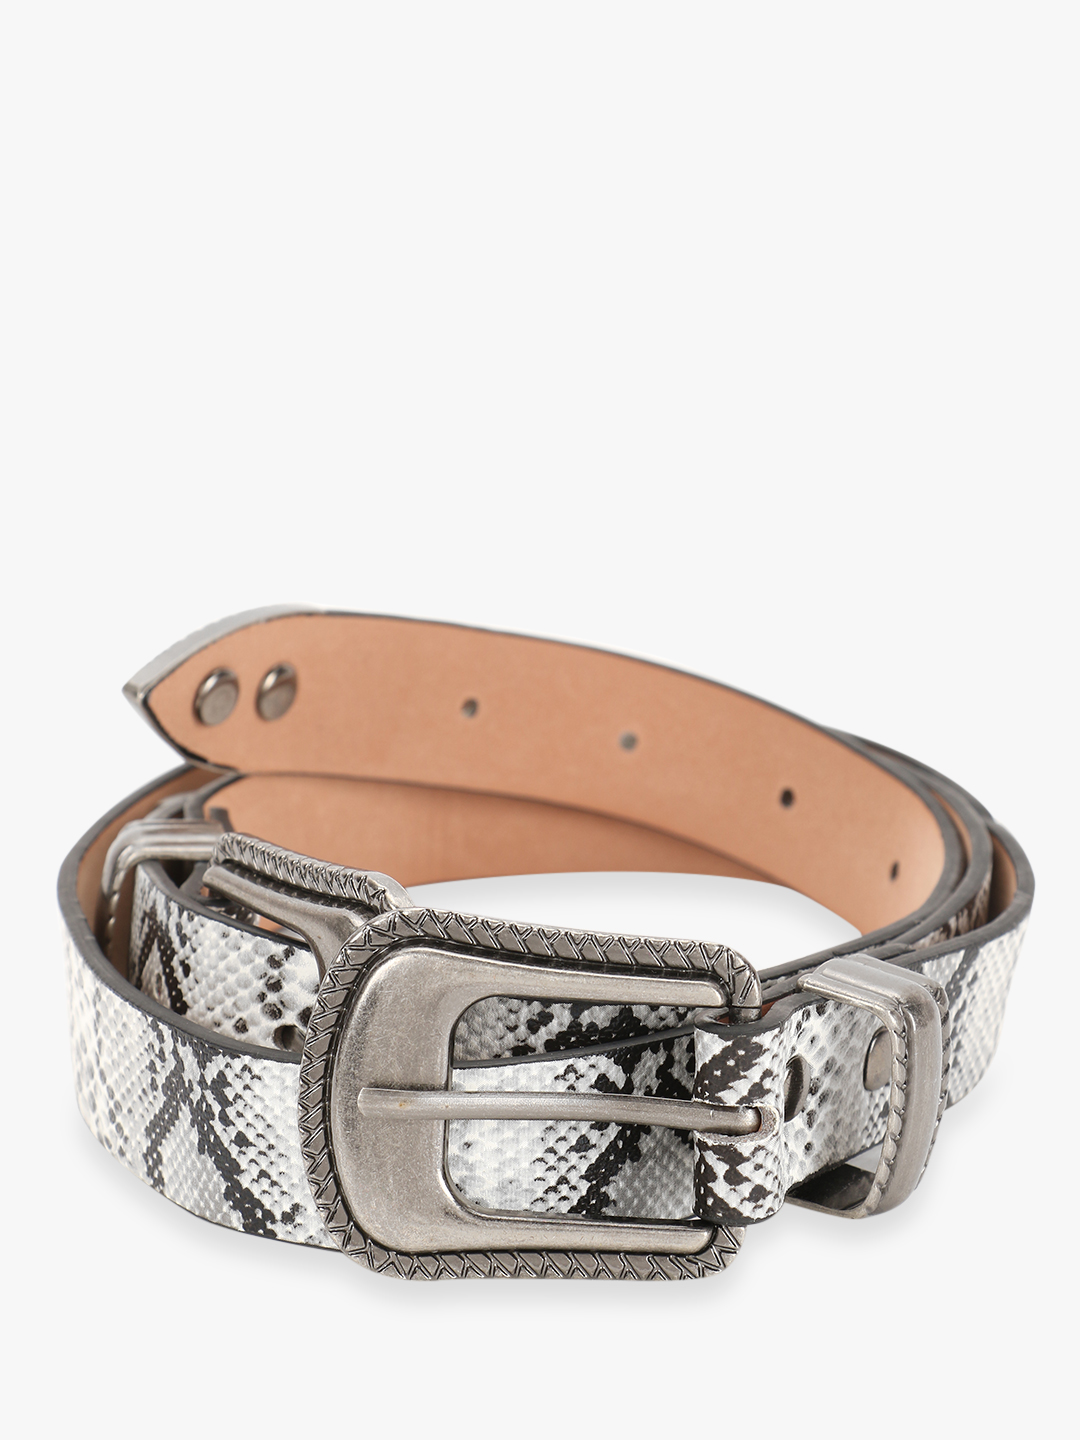 KOOVS Multi Snakeskin Twin Buckle Belt 1